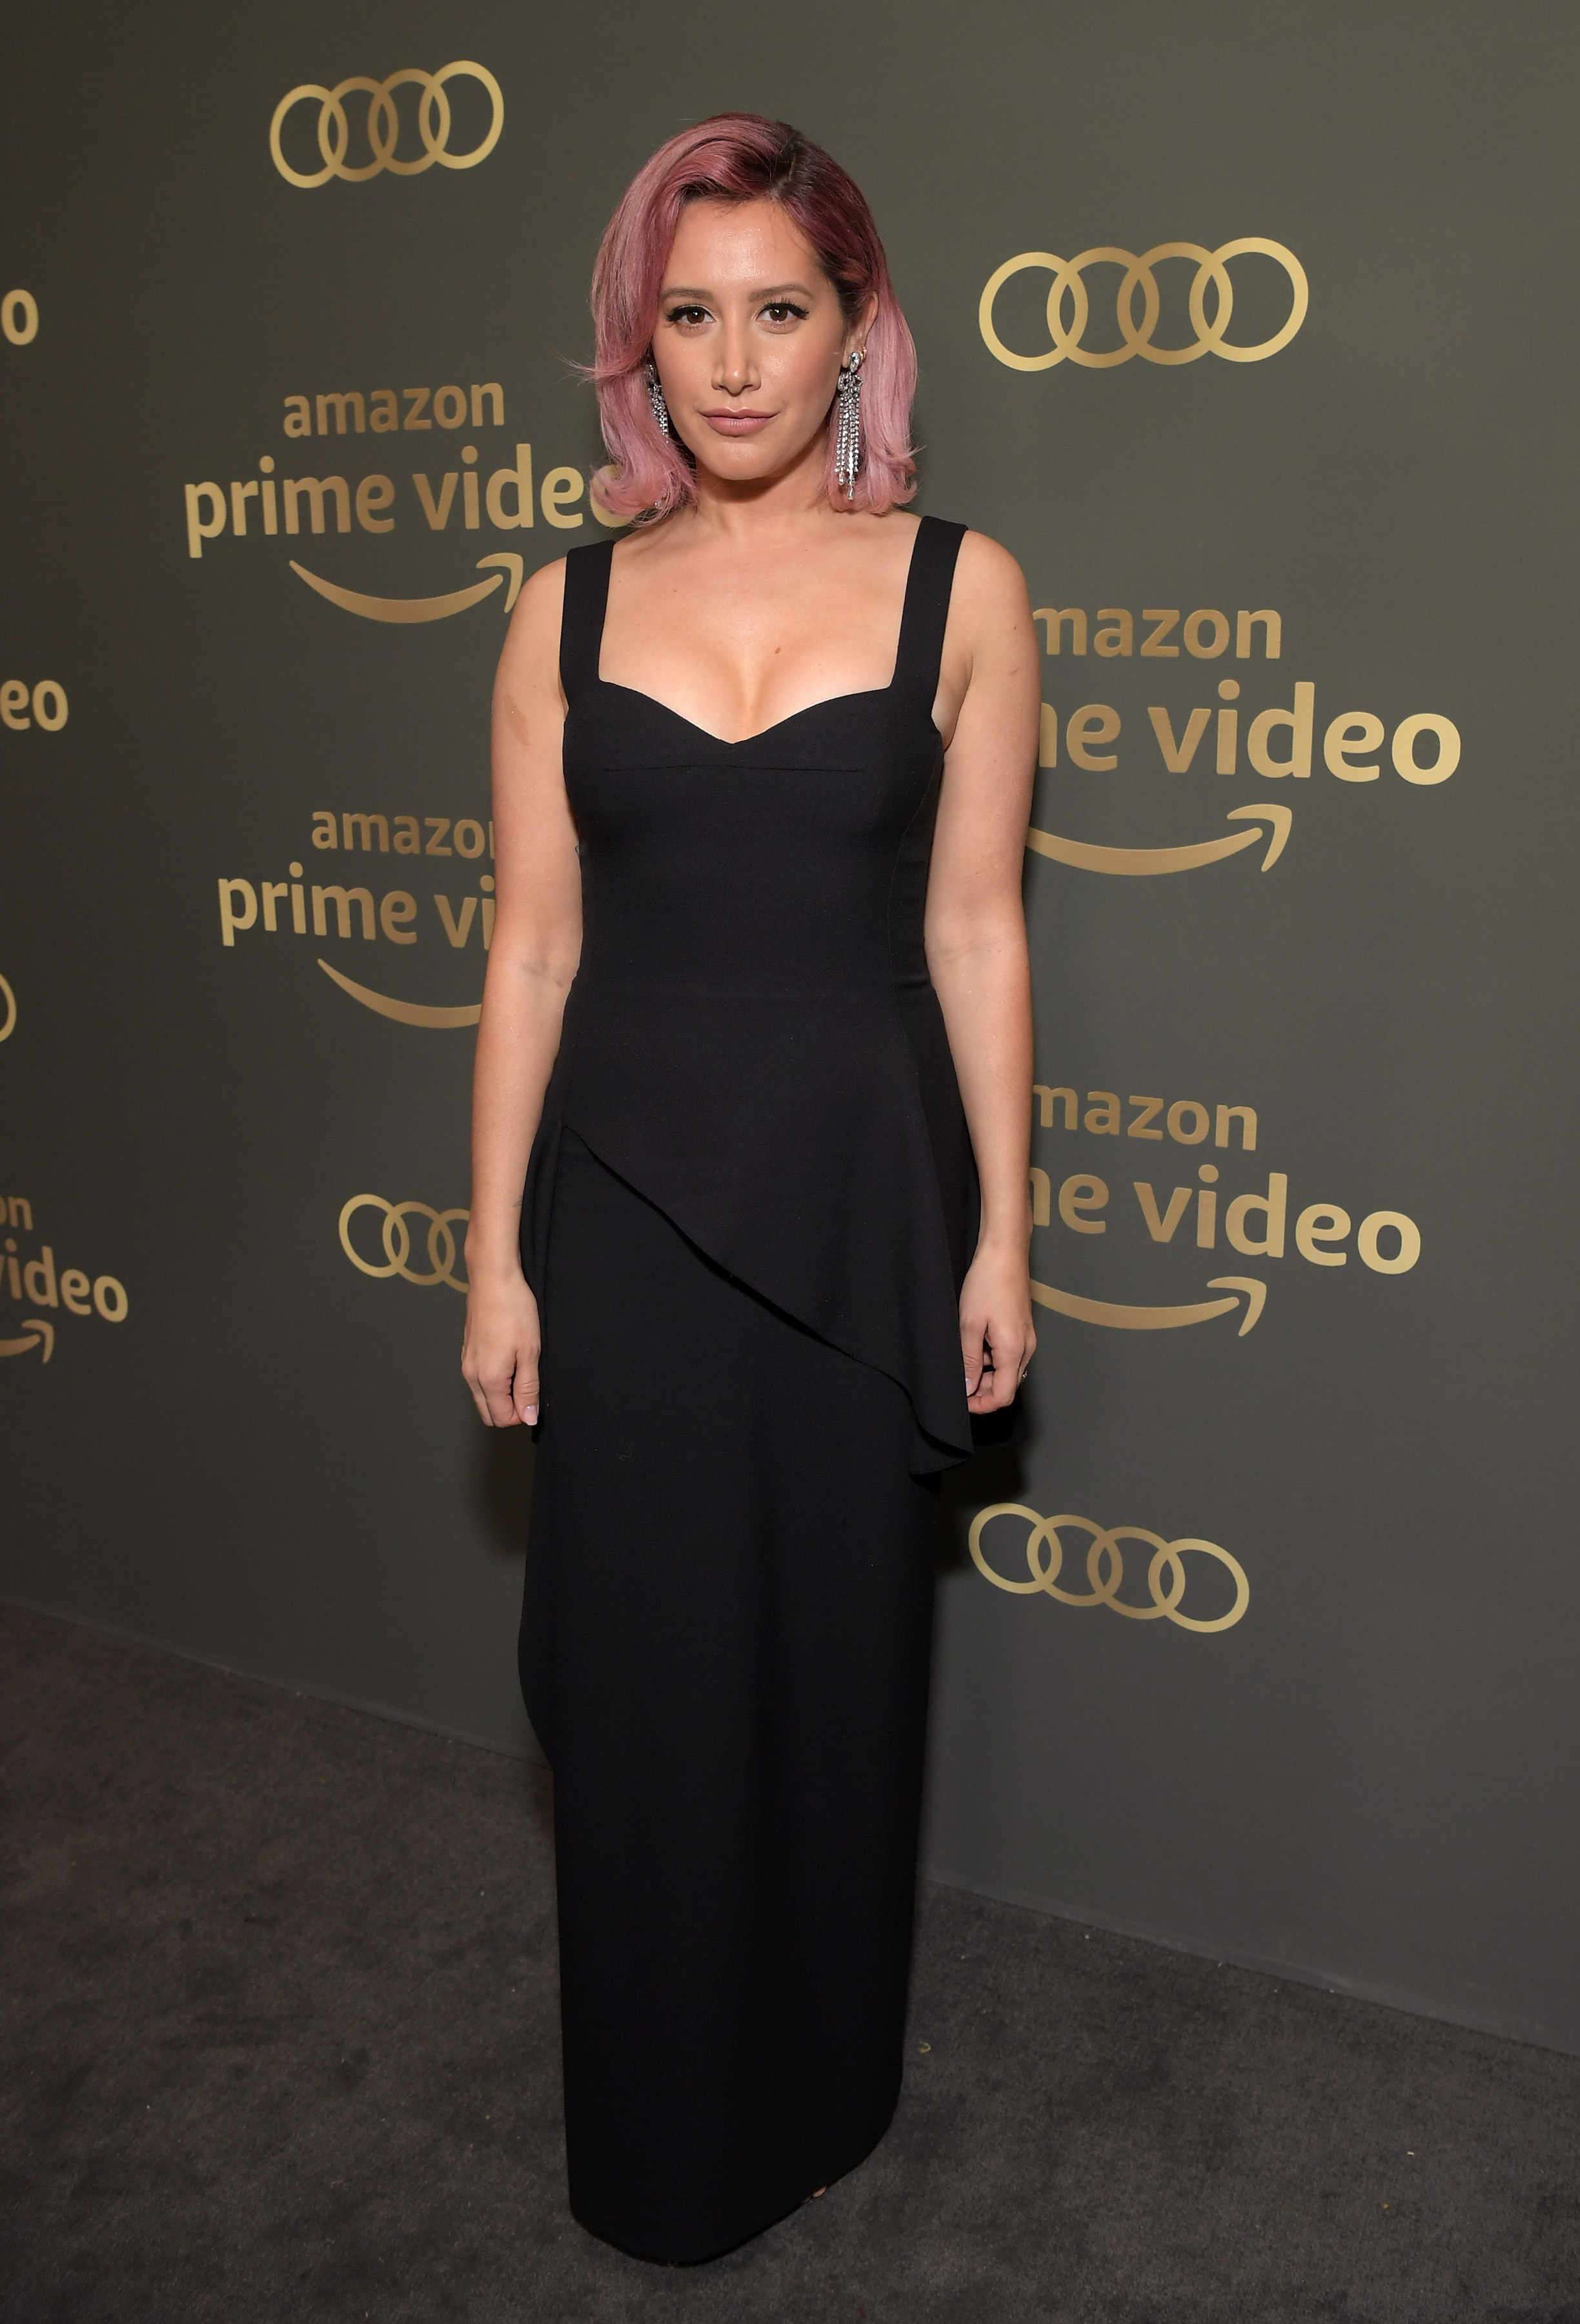 Ashley Tisdale attends the Amazon Prime Video Golden Globe Awards After Party at the Beverly Hilton hotel in Beverly Hills on Jan. 6, 2019.